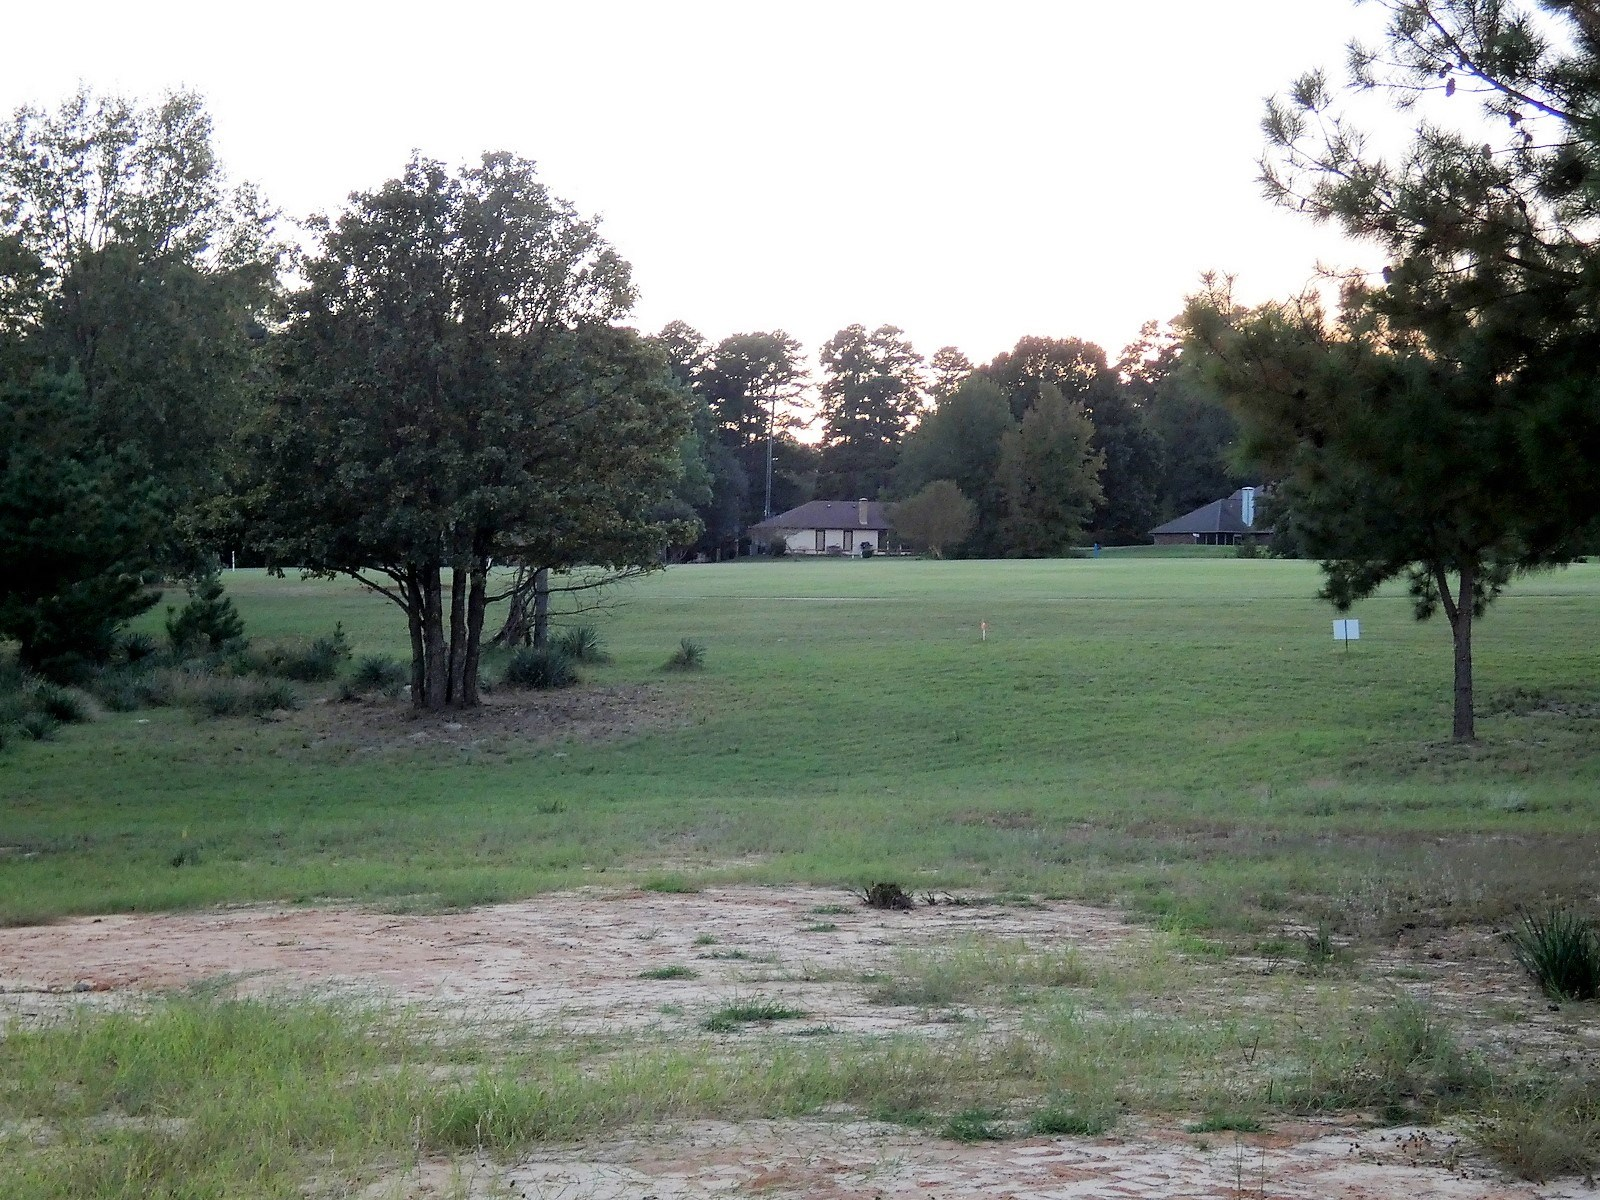 HOLLY LAKE RANCH, TEXAS GOLF COURSE LOT FOR SALE